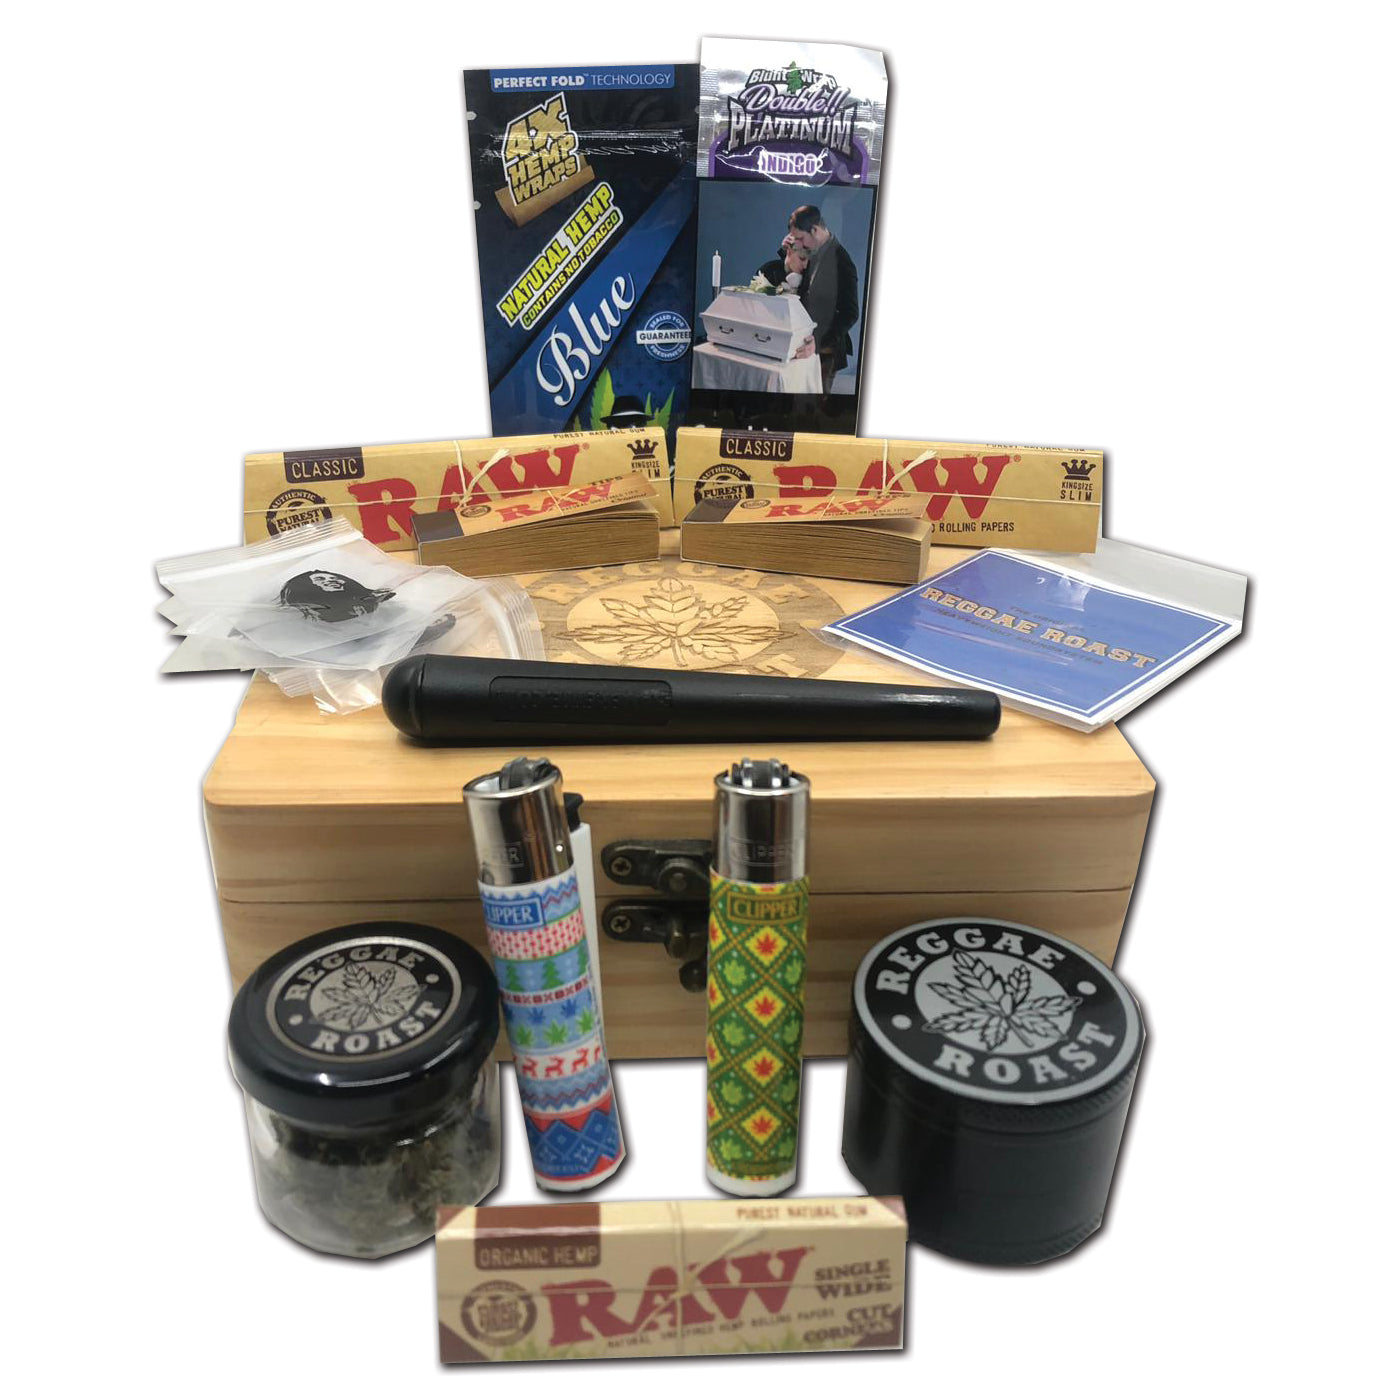 Reggae Roast Stash Box Bundles